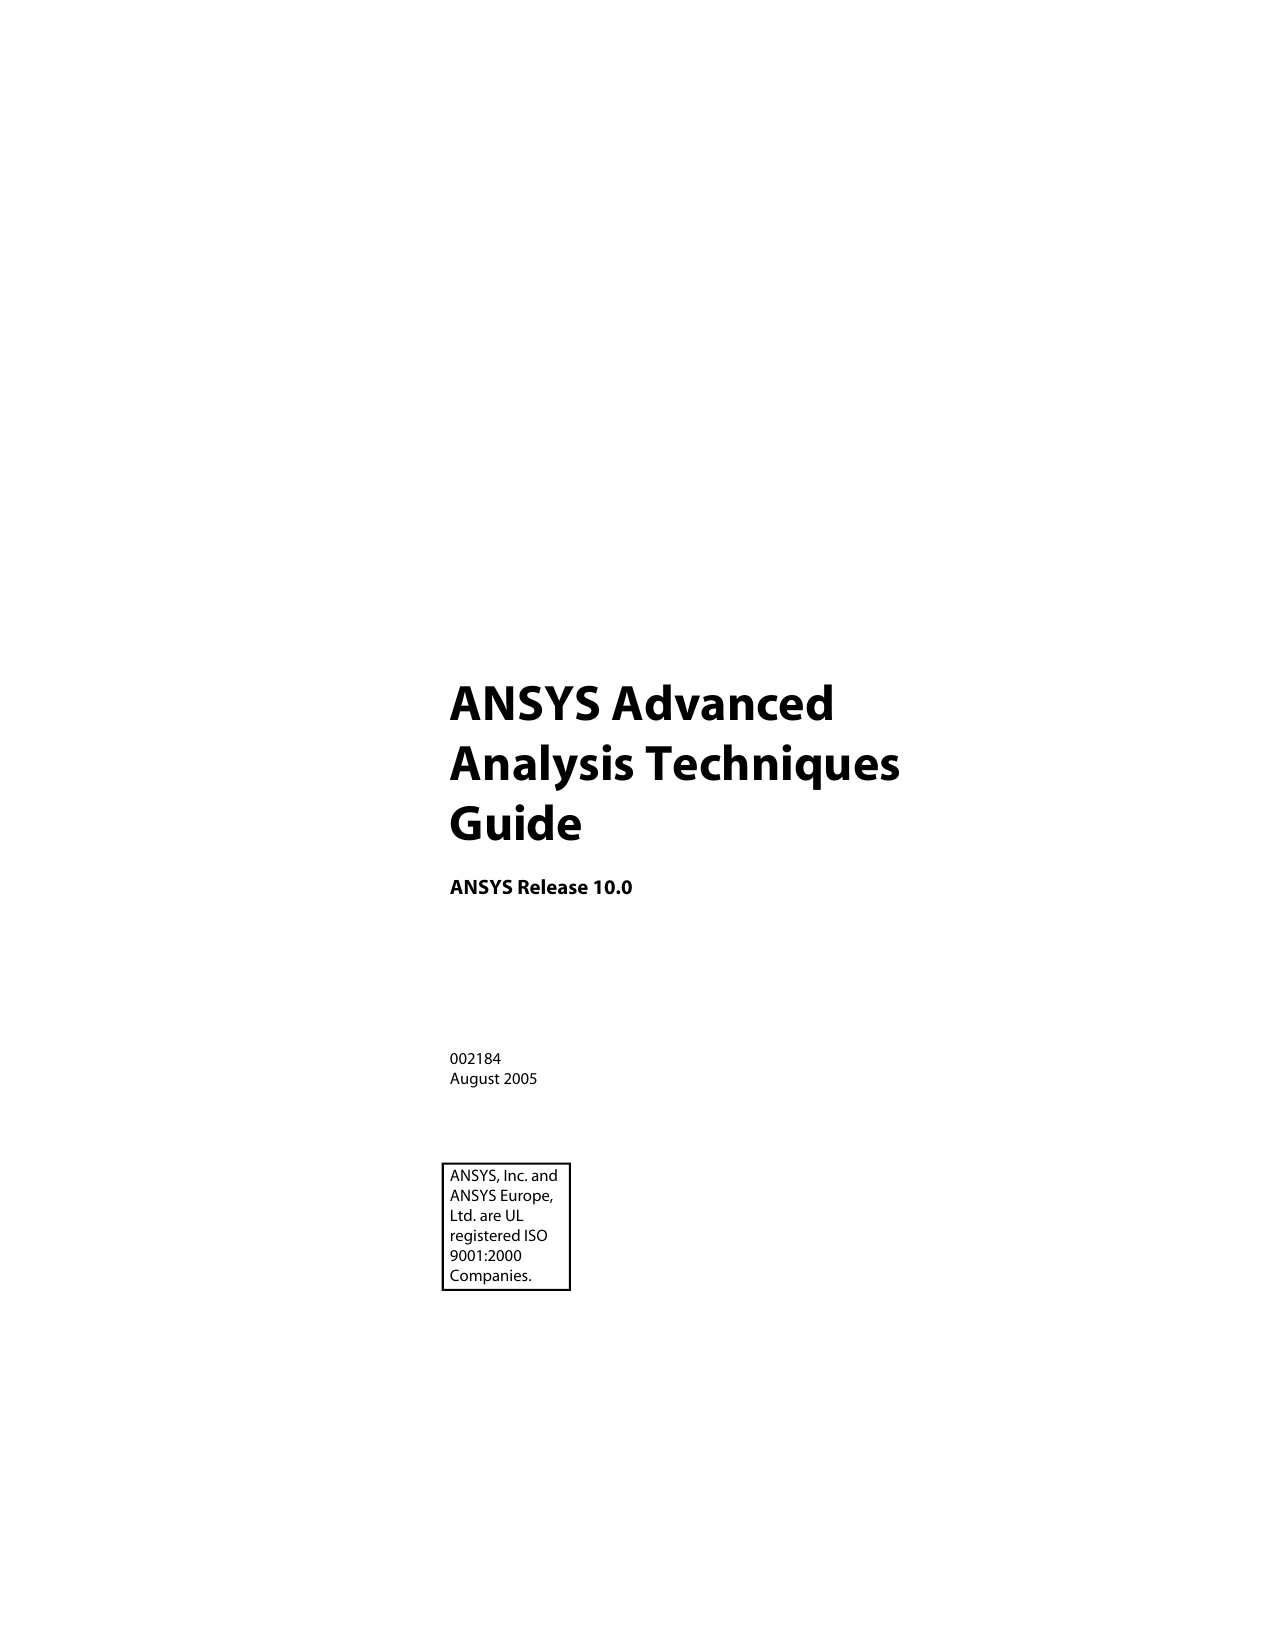 ANSYS Advanced Analysis Techniques Guide